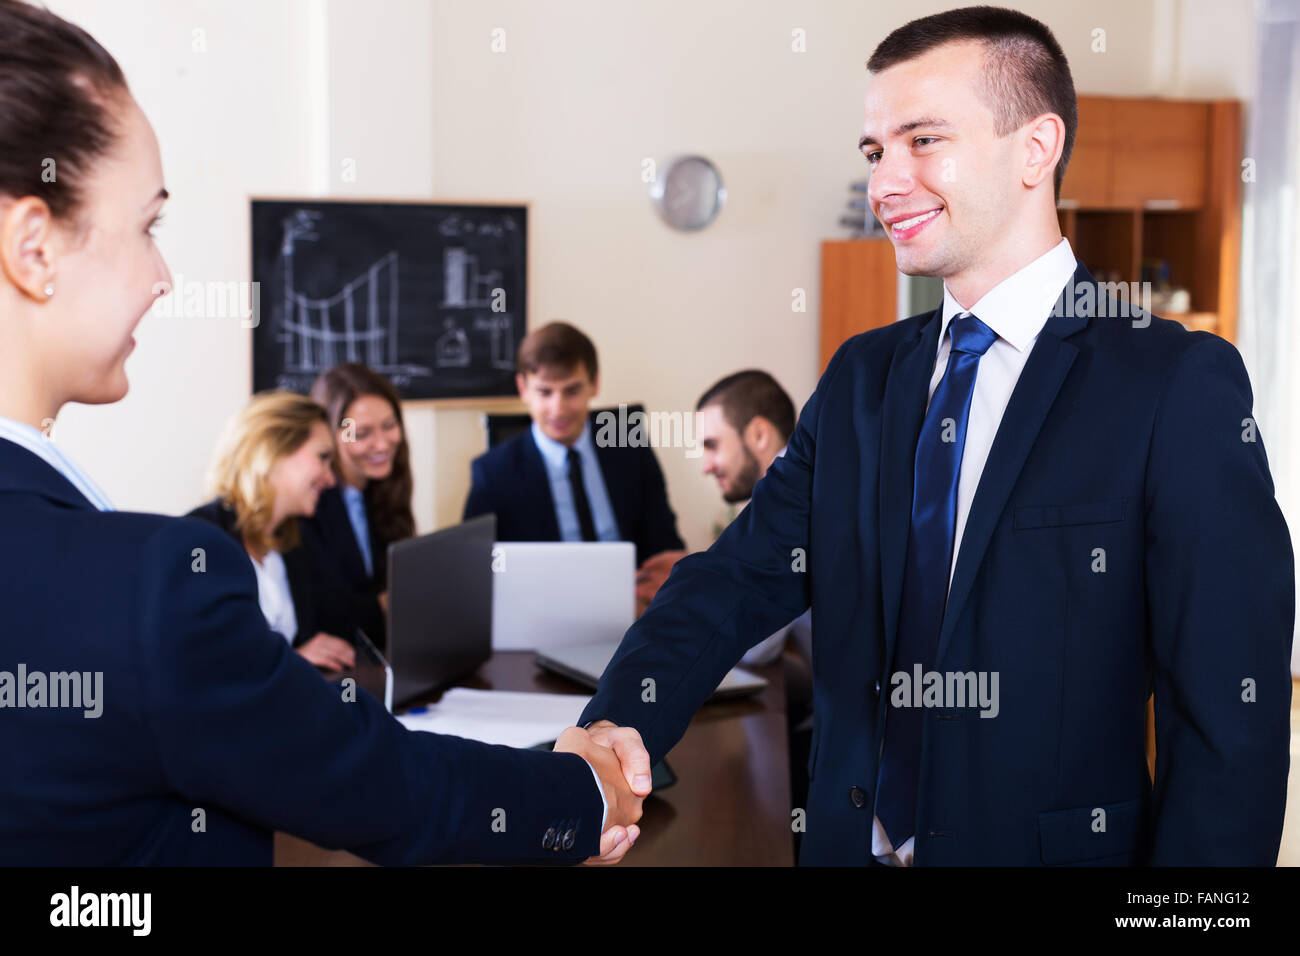 The head of office warmly welcomes new team member indoors - Stock Image